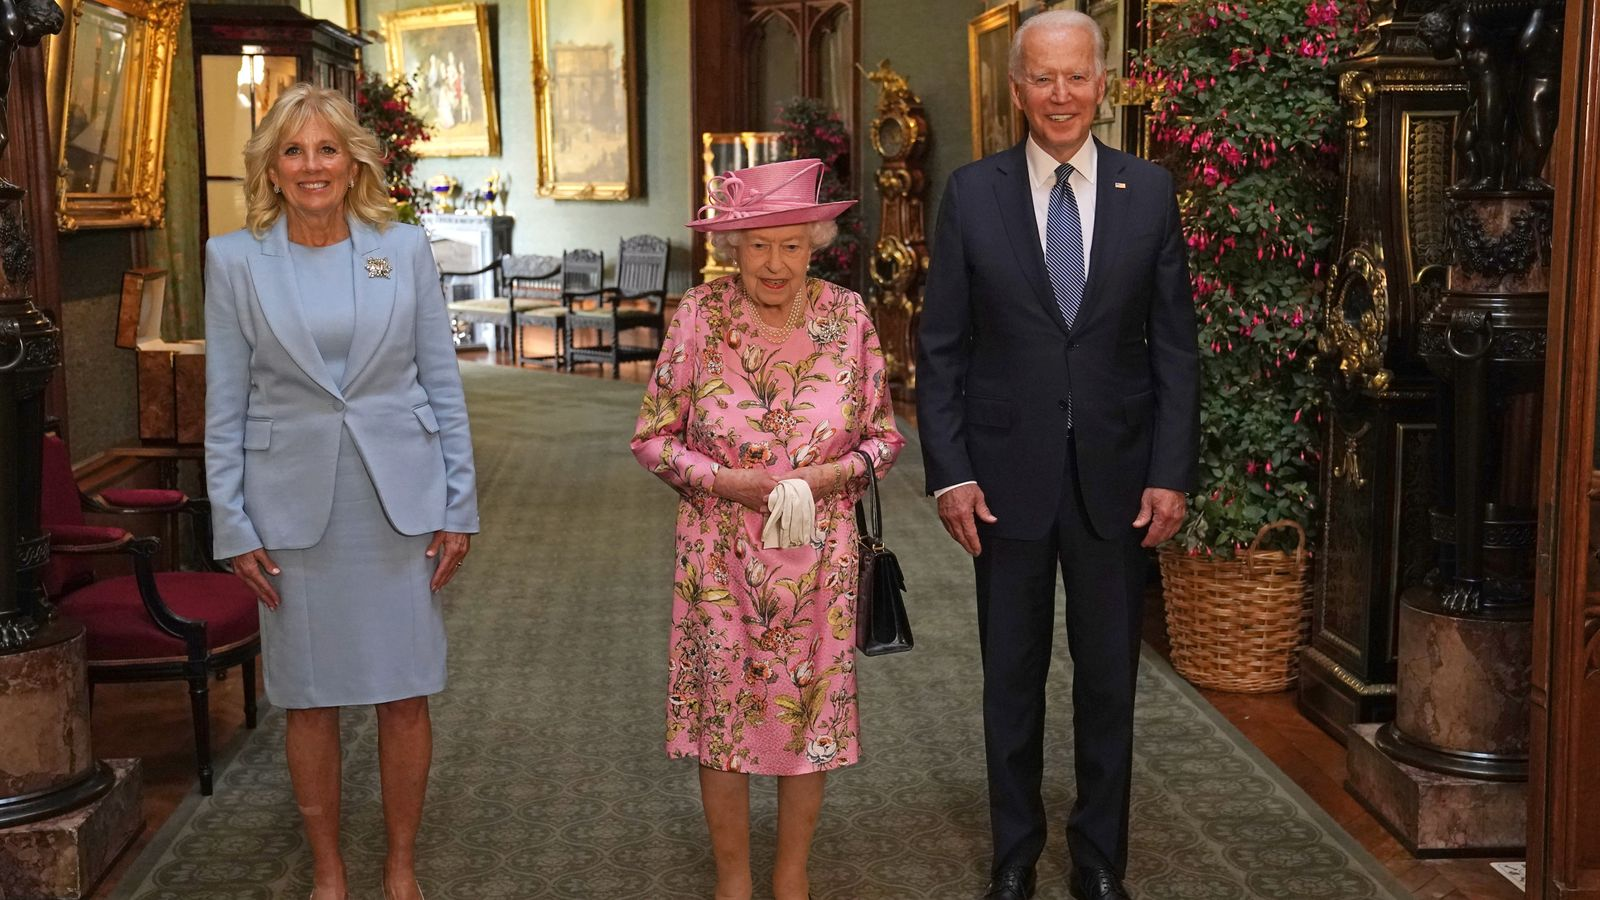 G7 summit: President Biden and First Lady enjoy tea with the Queen at Windsor Castle